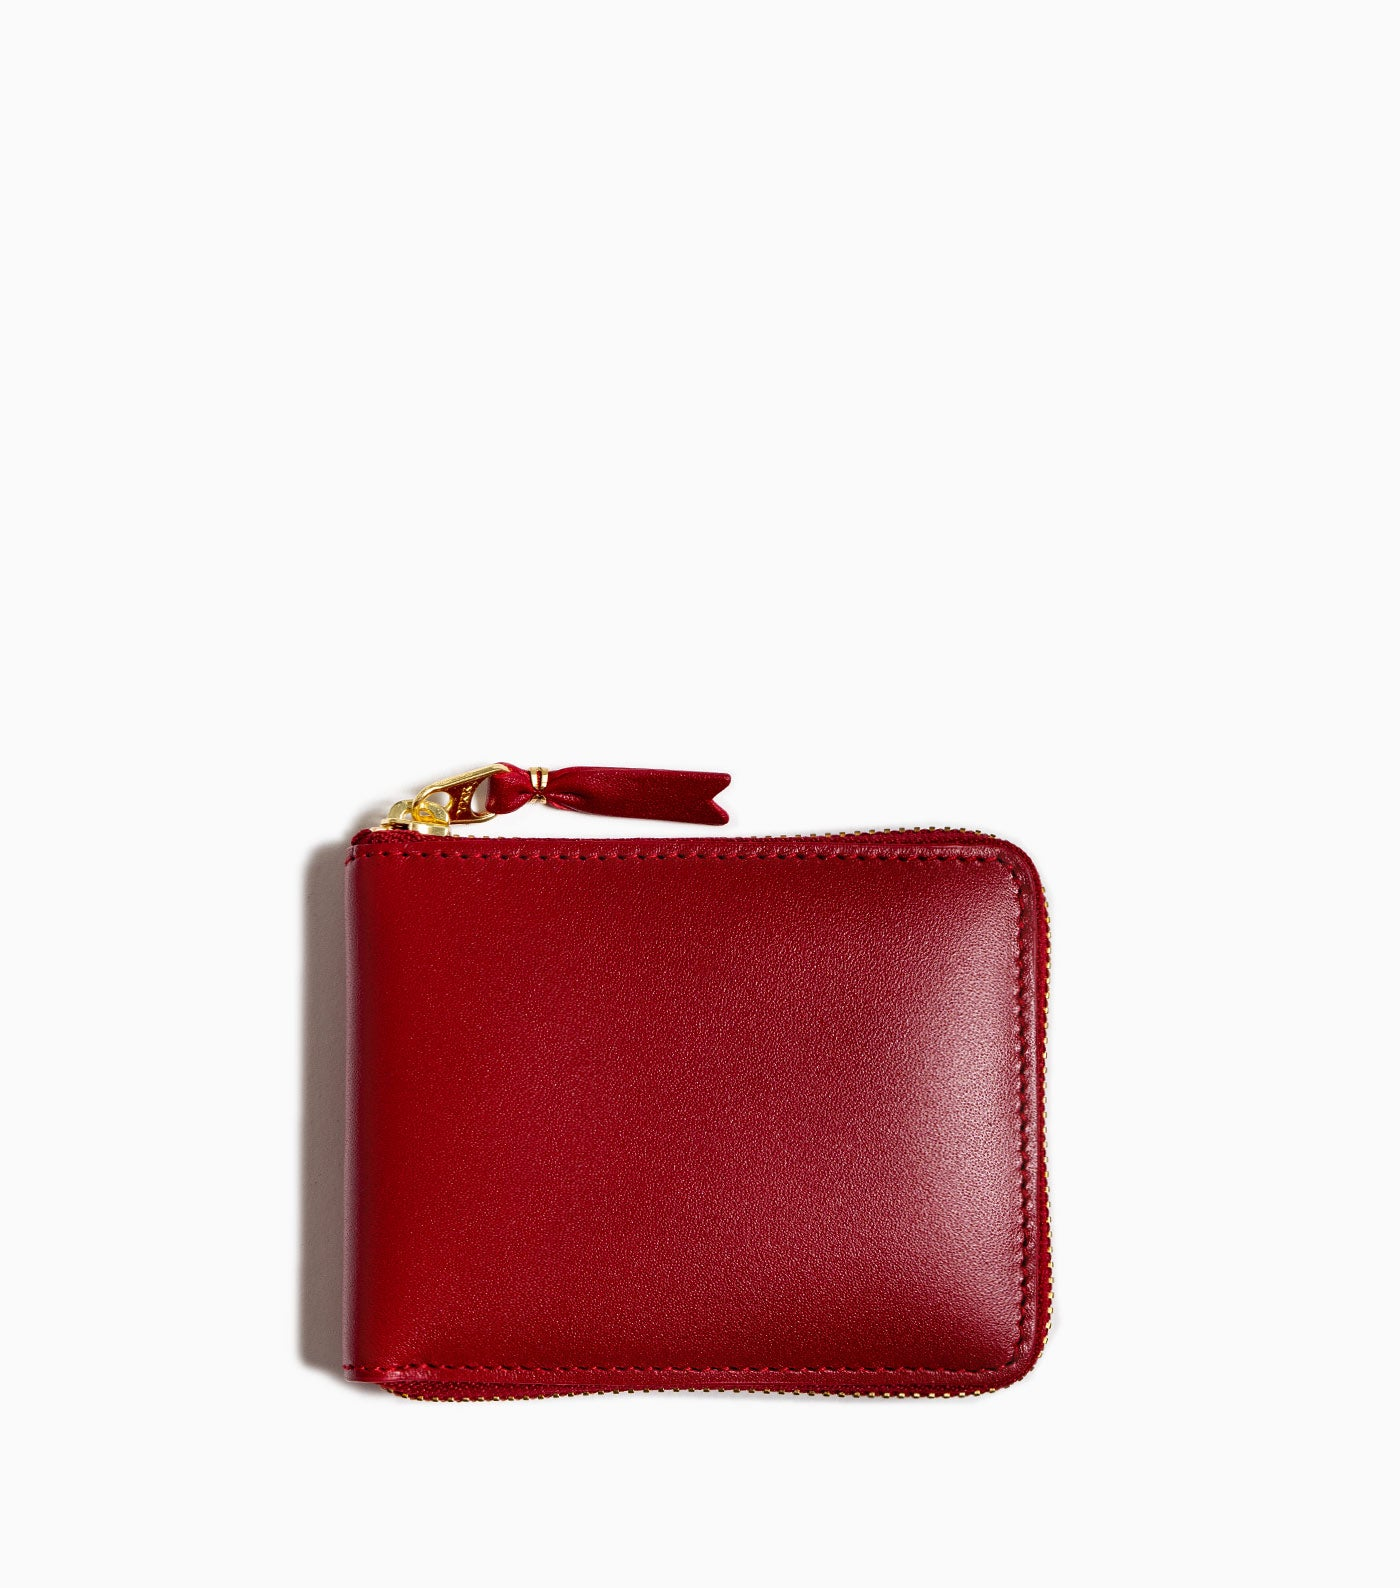 Comme des Garçons Wallet Classic Leather SA7100 - Red - CARTOCON